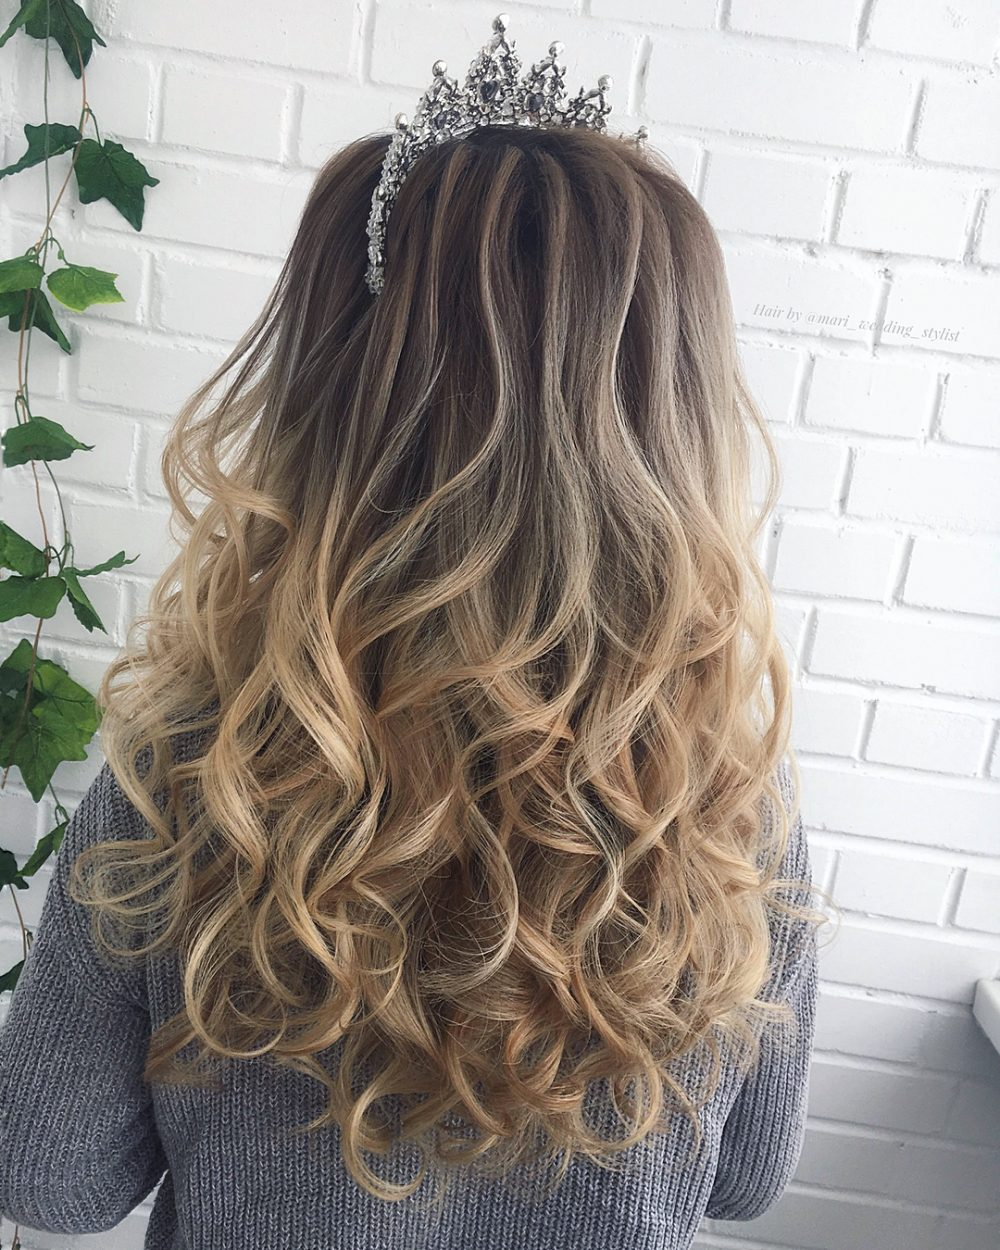 prom hair down styles 18 perfectly gorgeous hairstyles for prom 7707 | delicant and elegant prom down